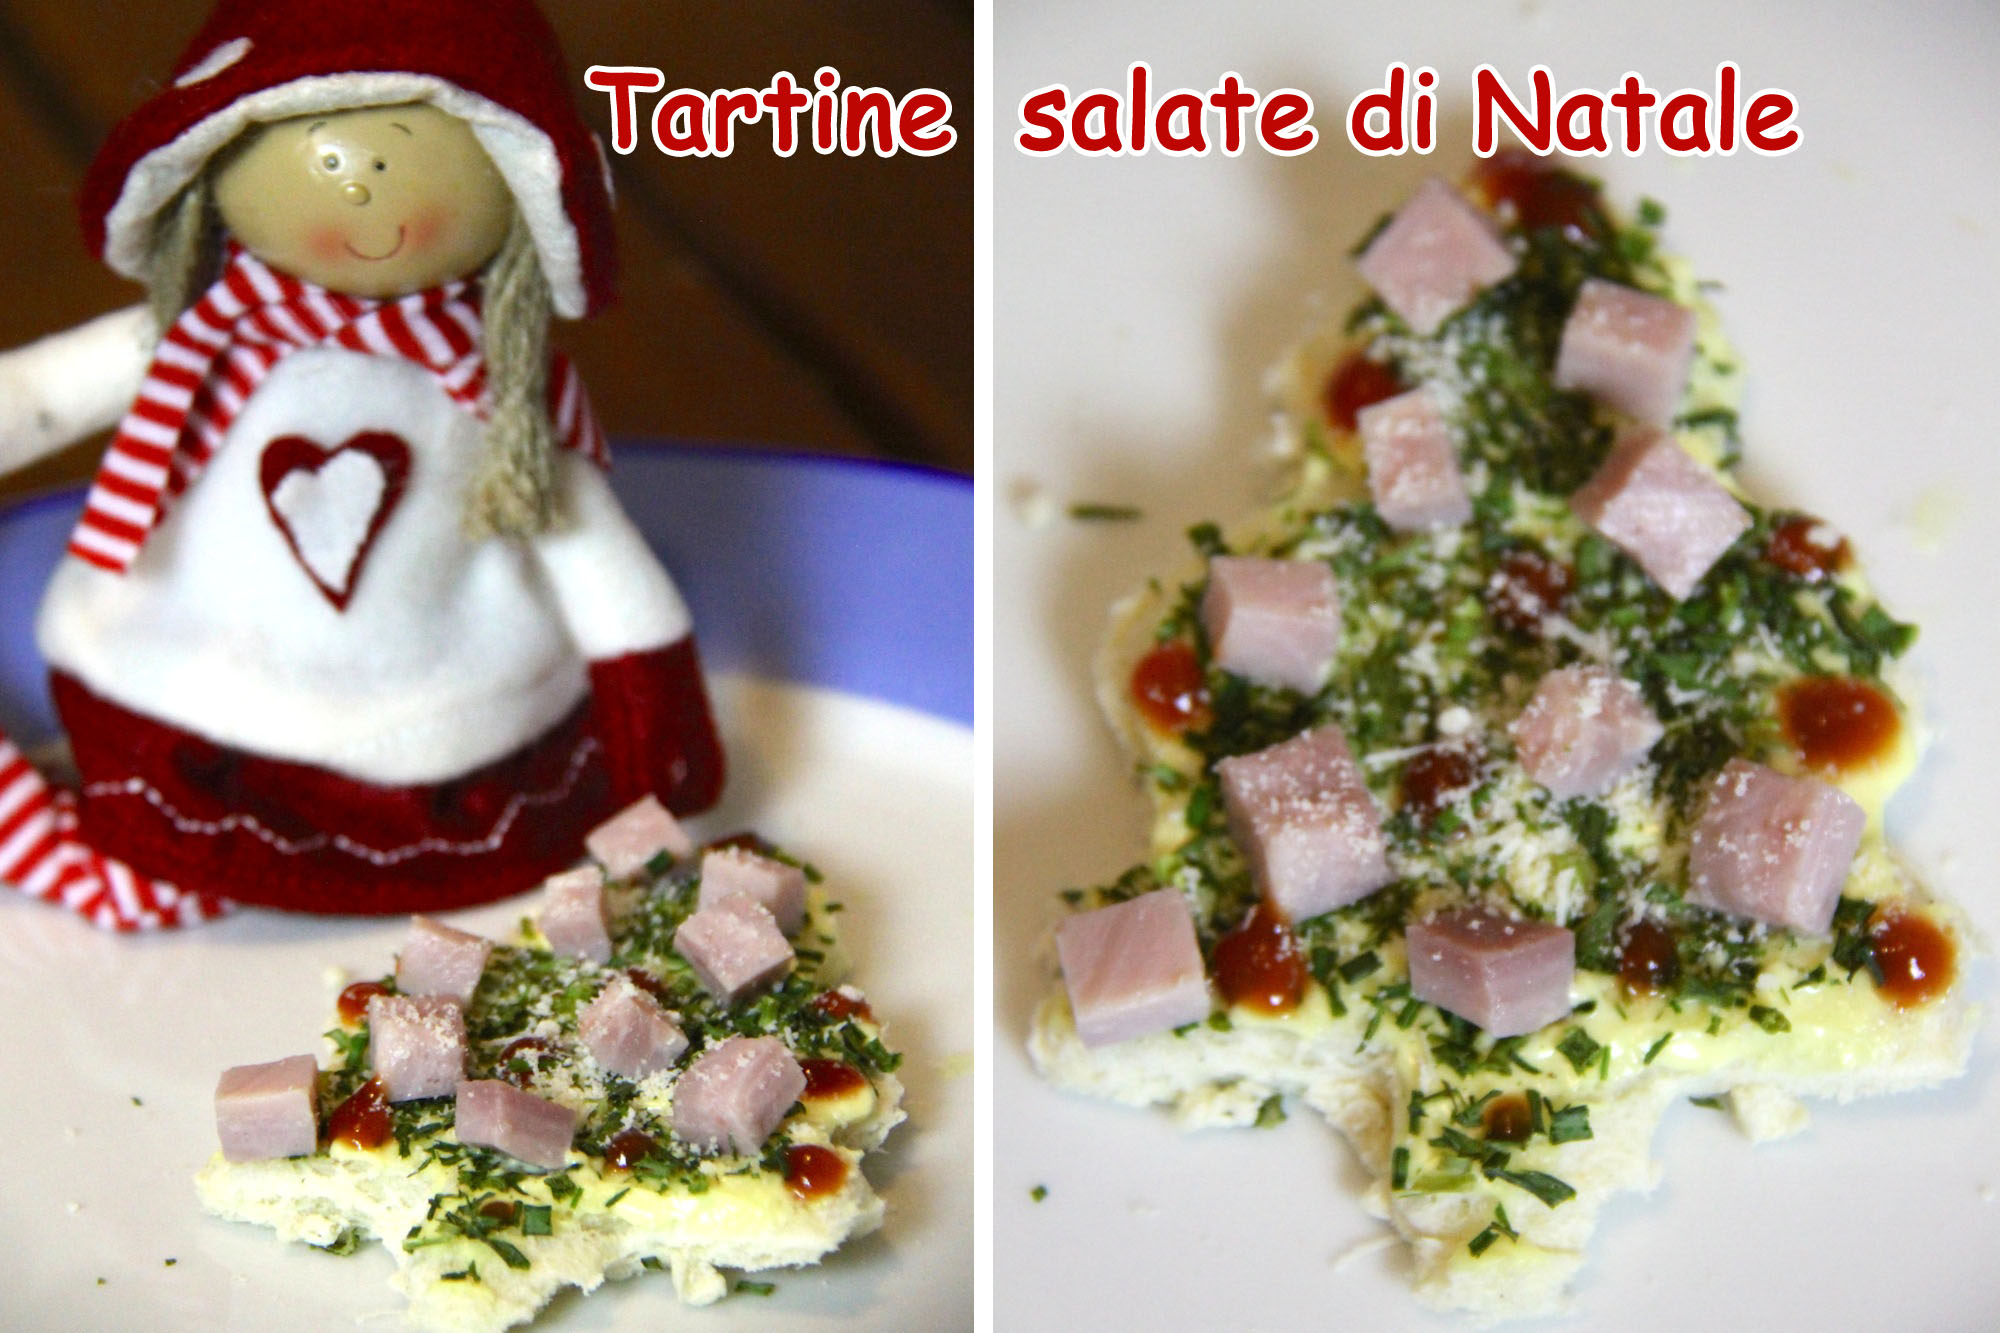 tartine salate di Natale